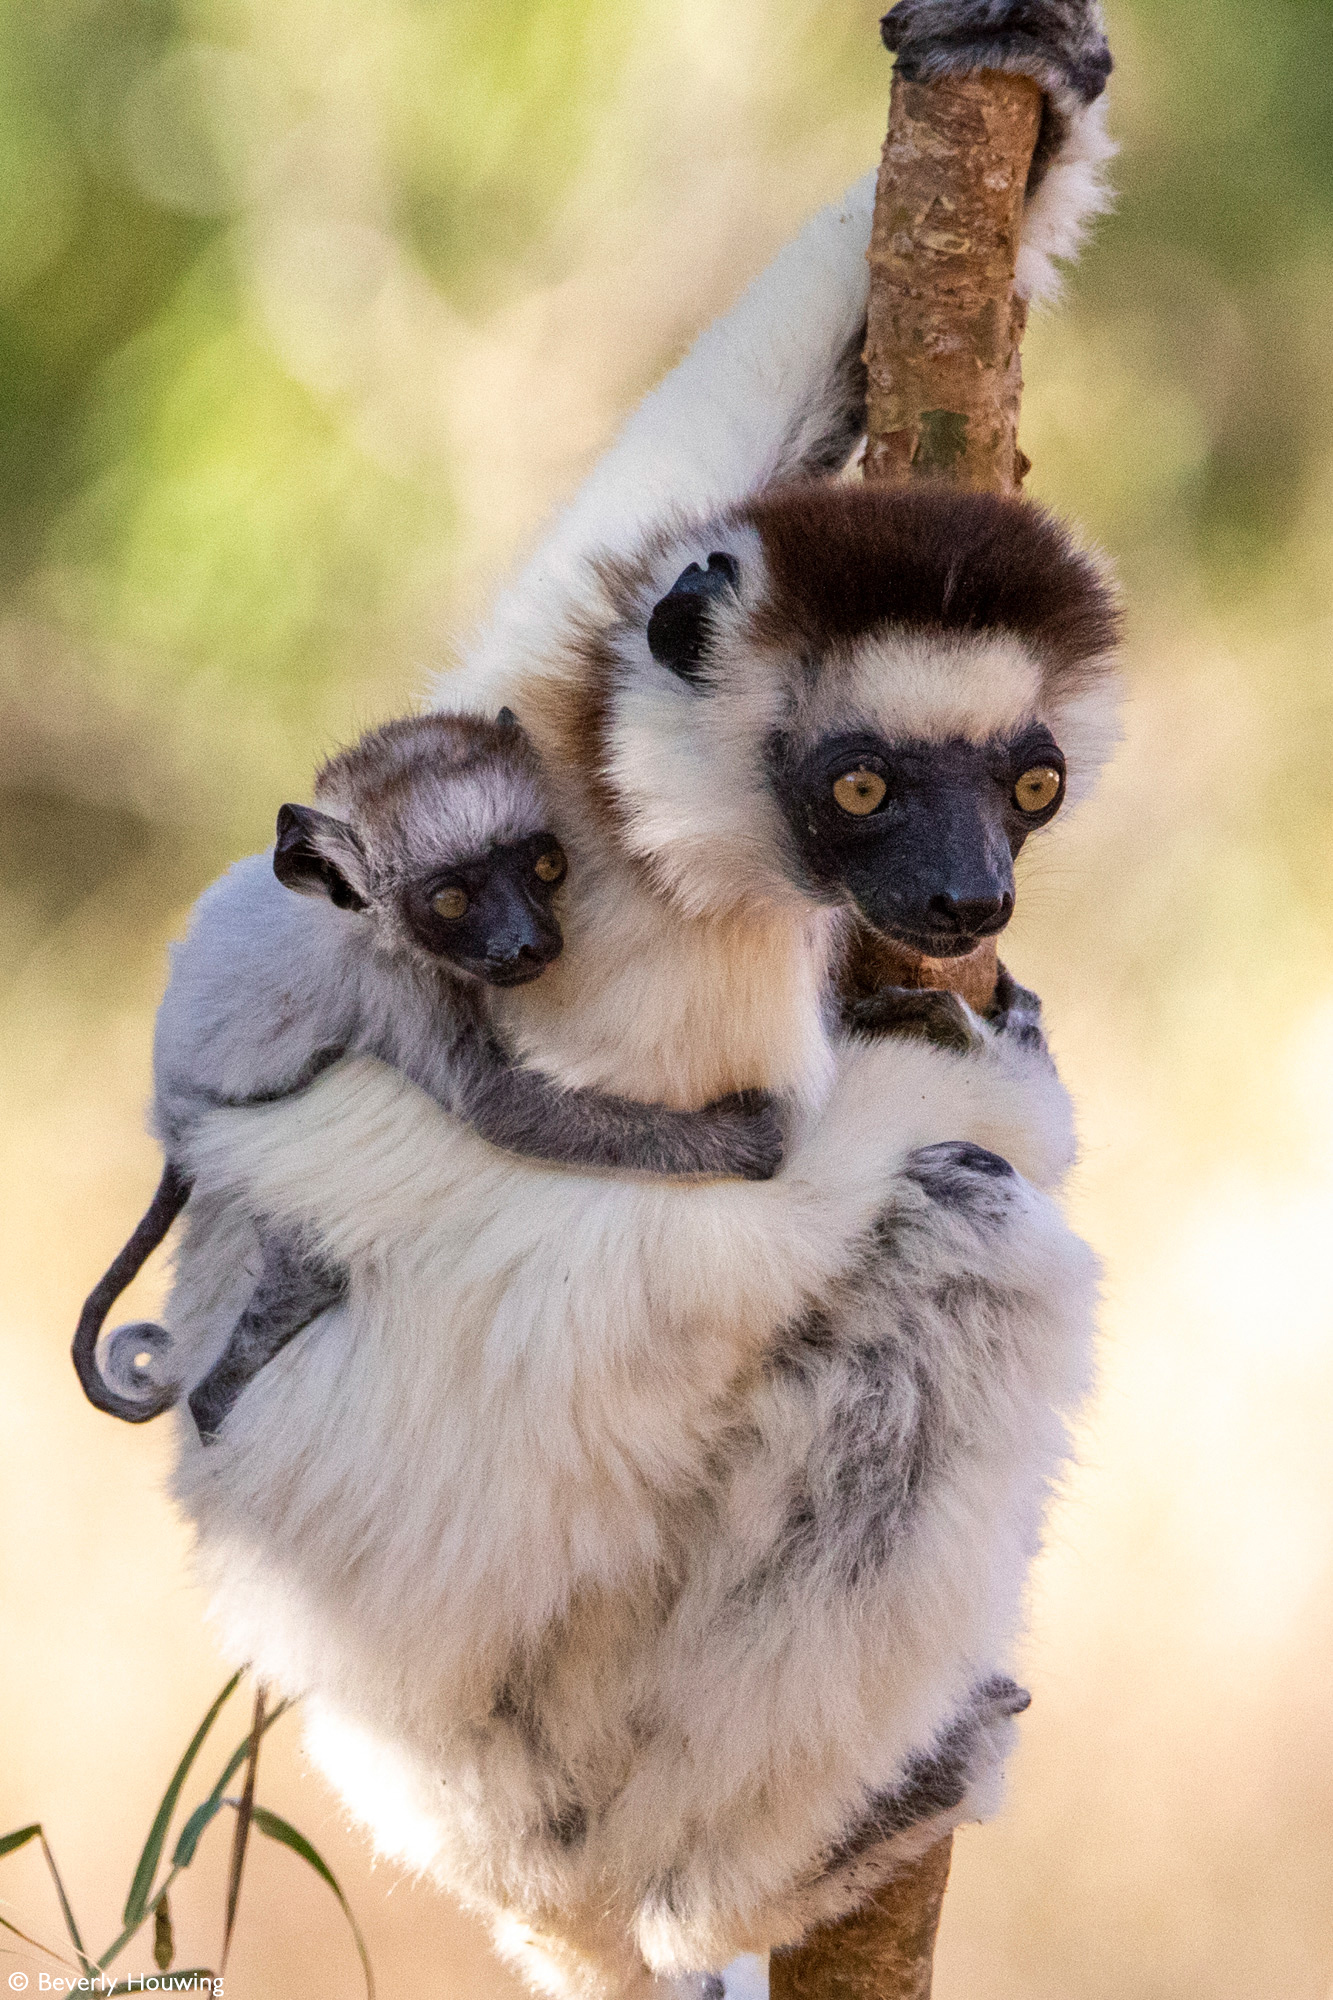 A Verreaux's sifaka clings to a branch with her baby on her shoulder. Berenty Reserve, Madagascar © Beverly Houwing